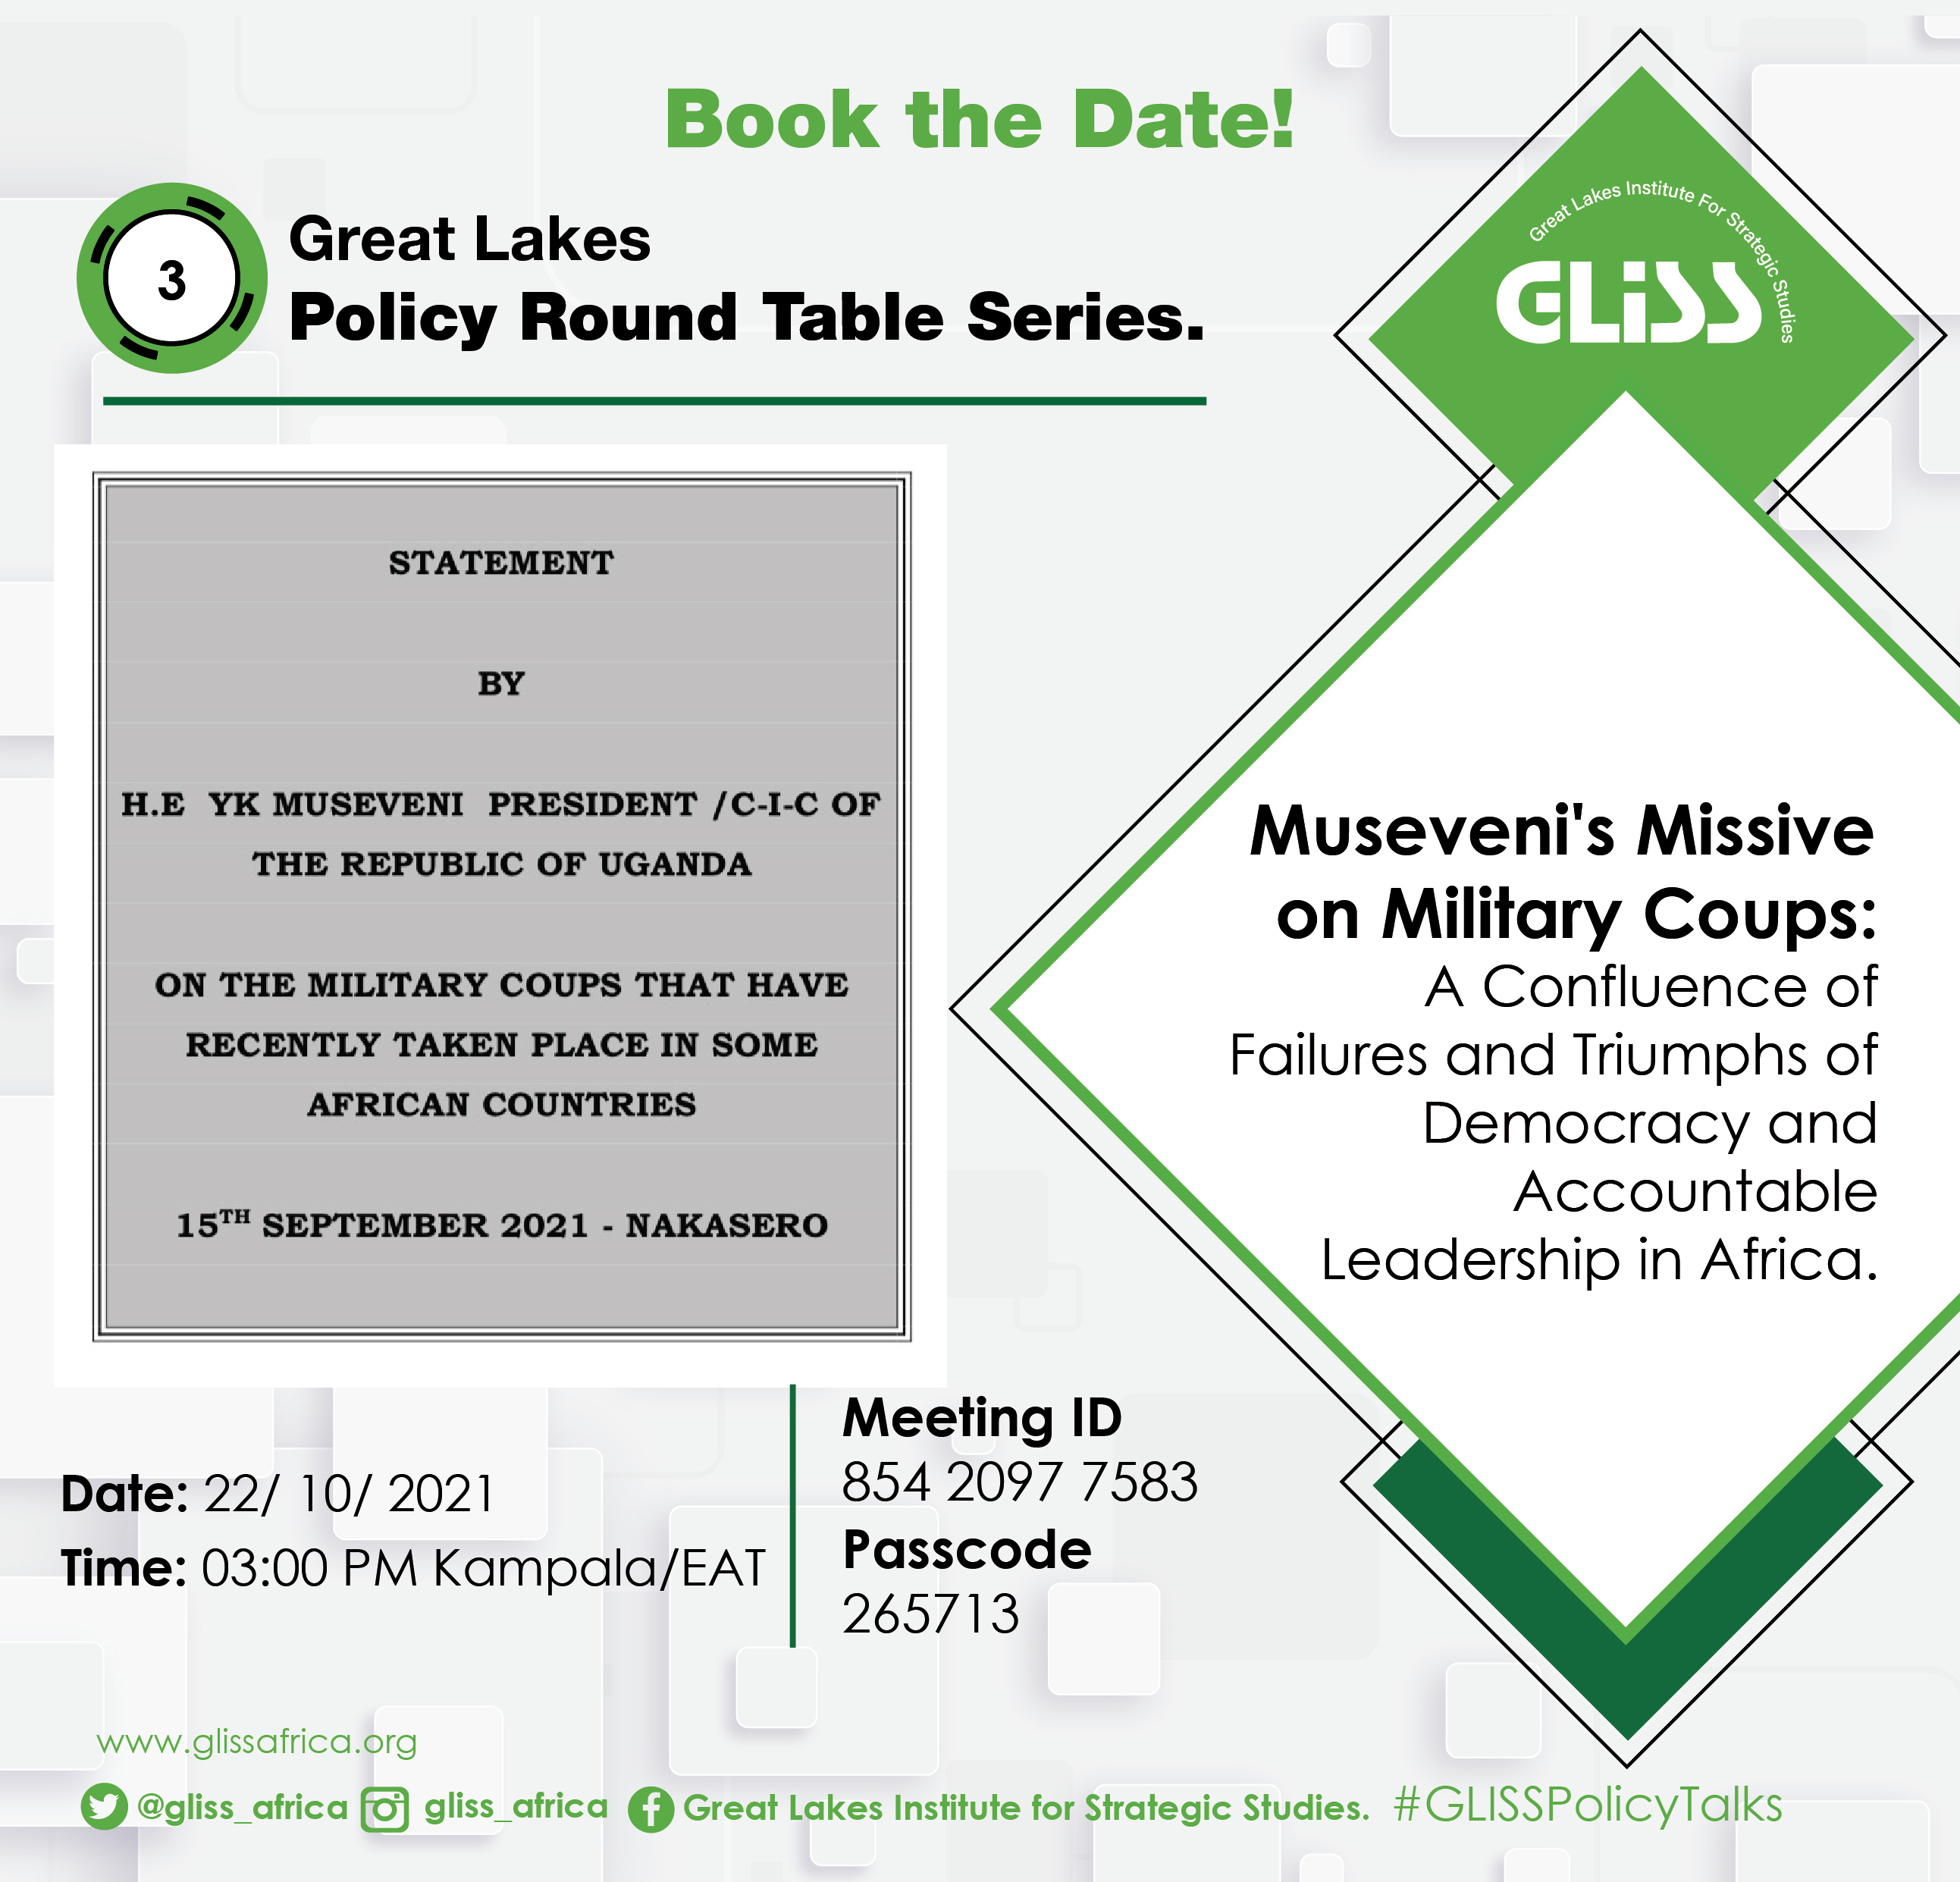 Great Lakes Policy Round Tables